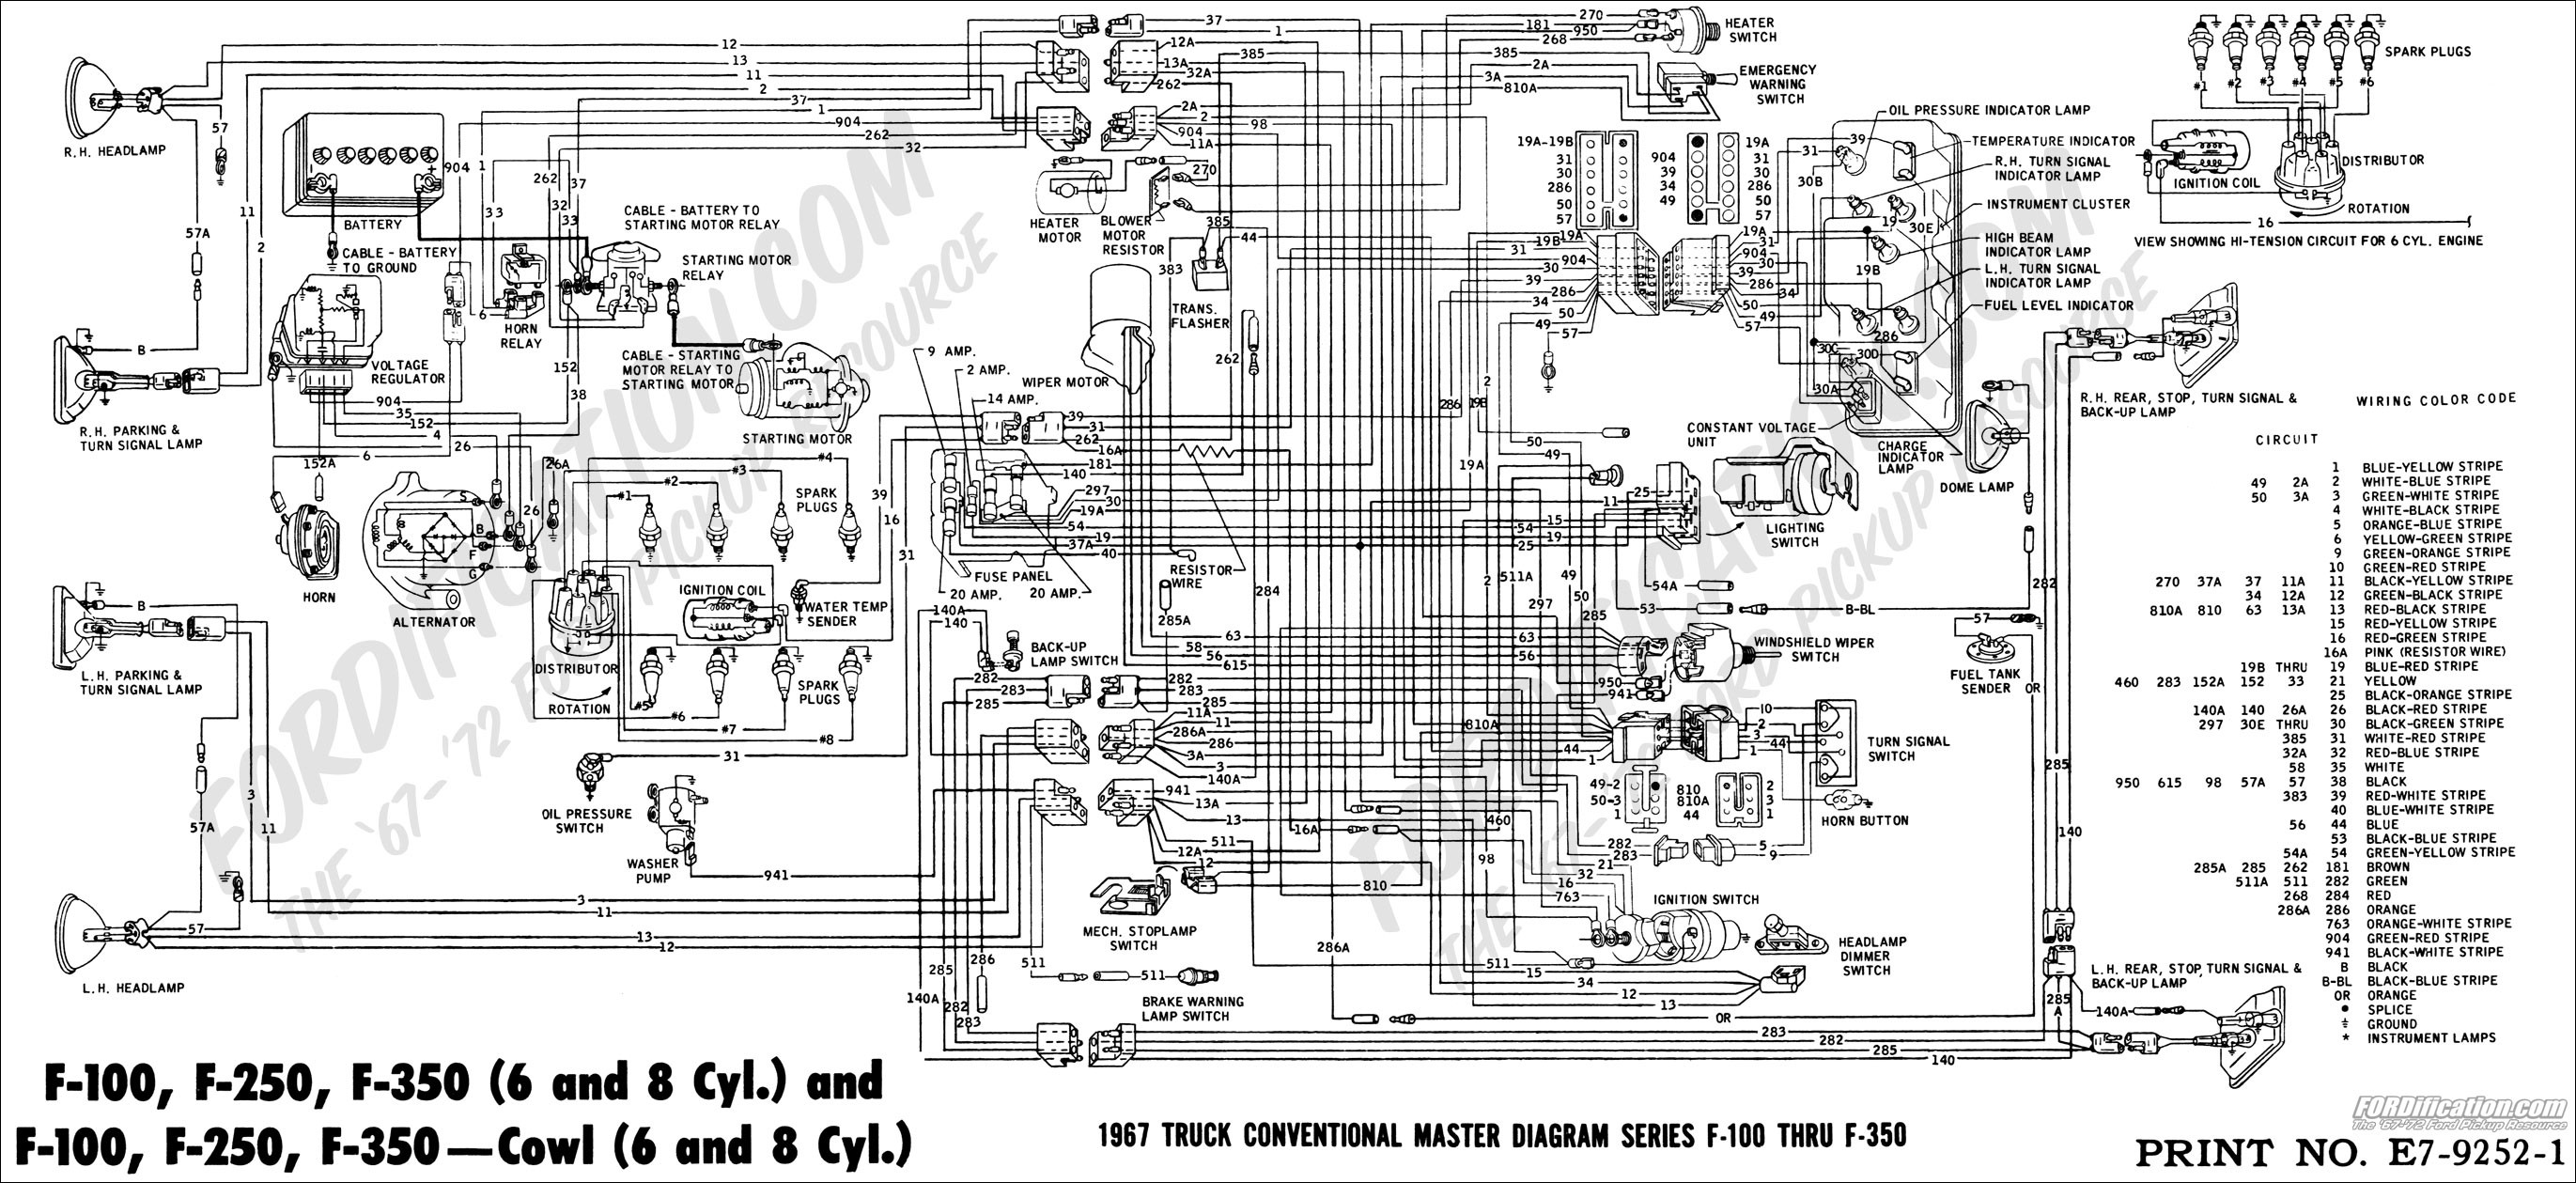 6.7 Powerstroke Wiring Diagrams 2012 F250 Ignition Wiring Diagram Wiring Diagrams Of 6.7 Powerstroke Wiring Diagrams